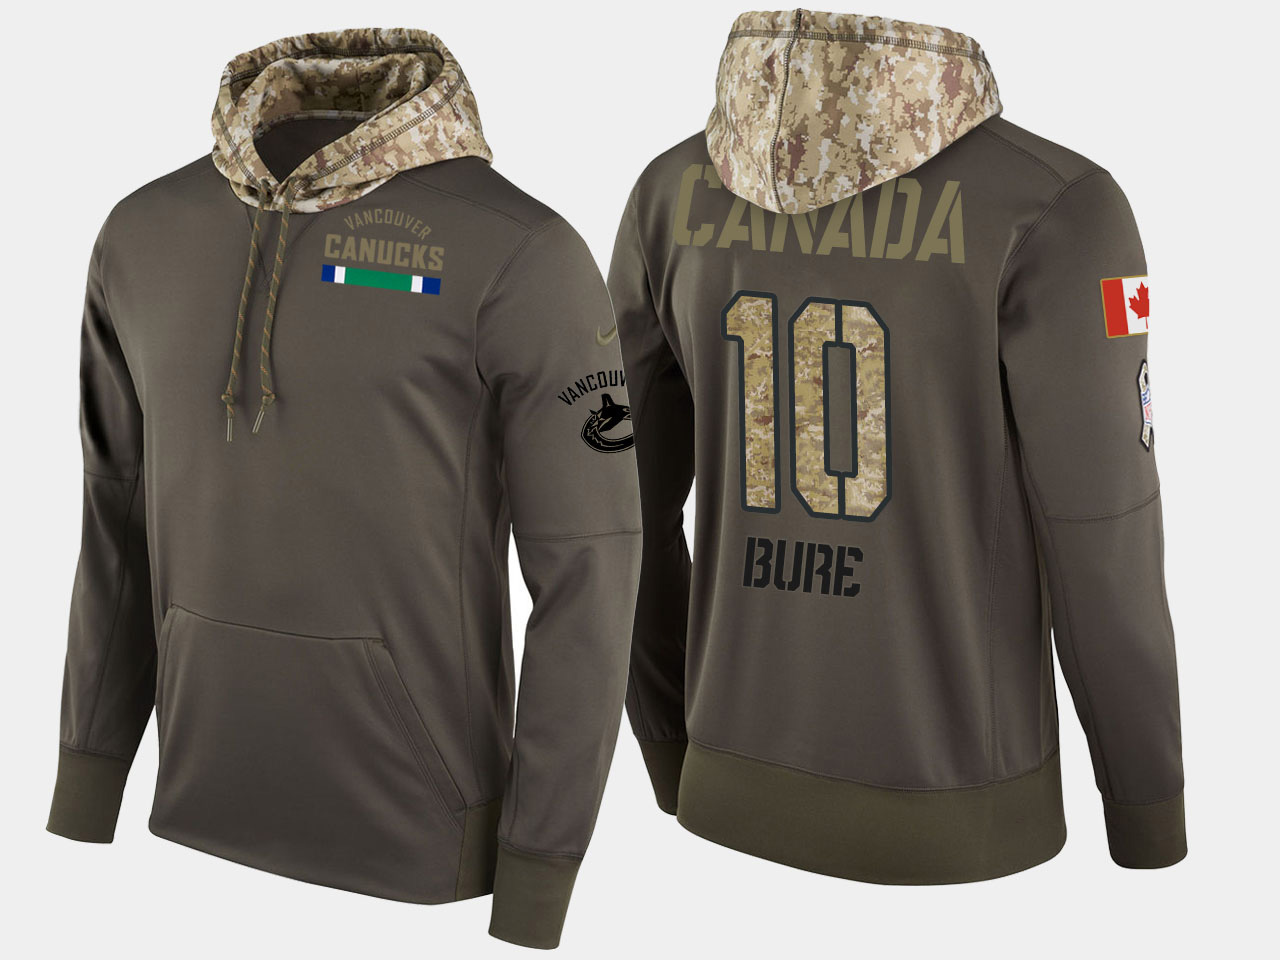 Nike Canucks 10 Pavel Bure Retired Olive Salute To Service Pullover Hoodie